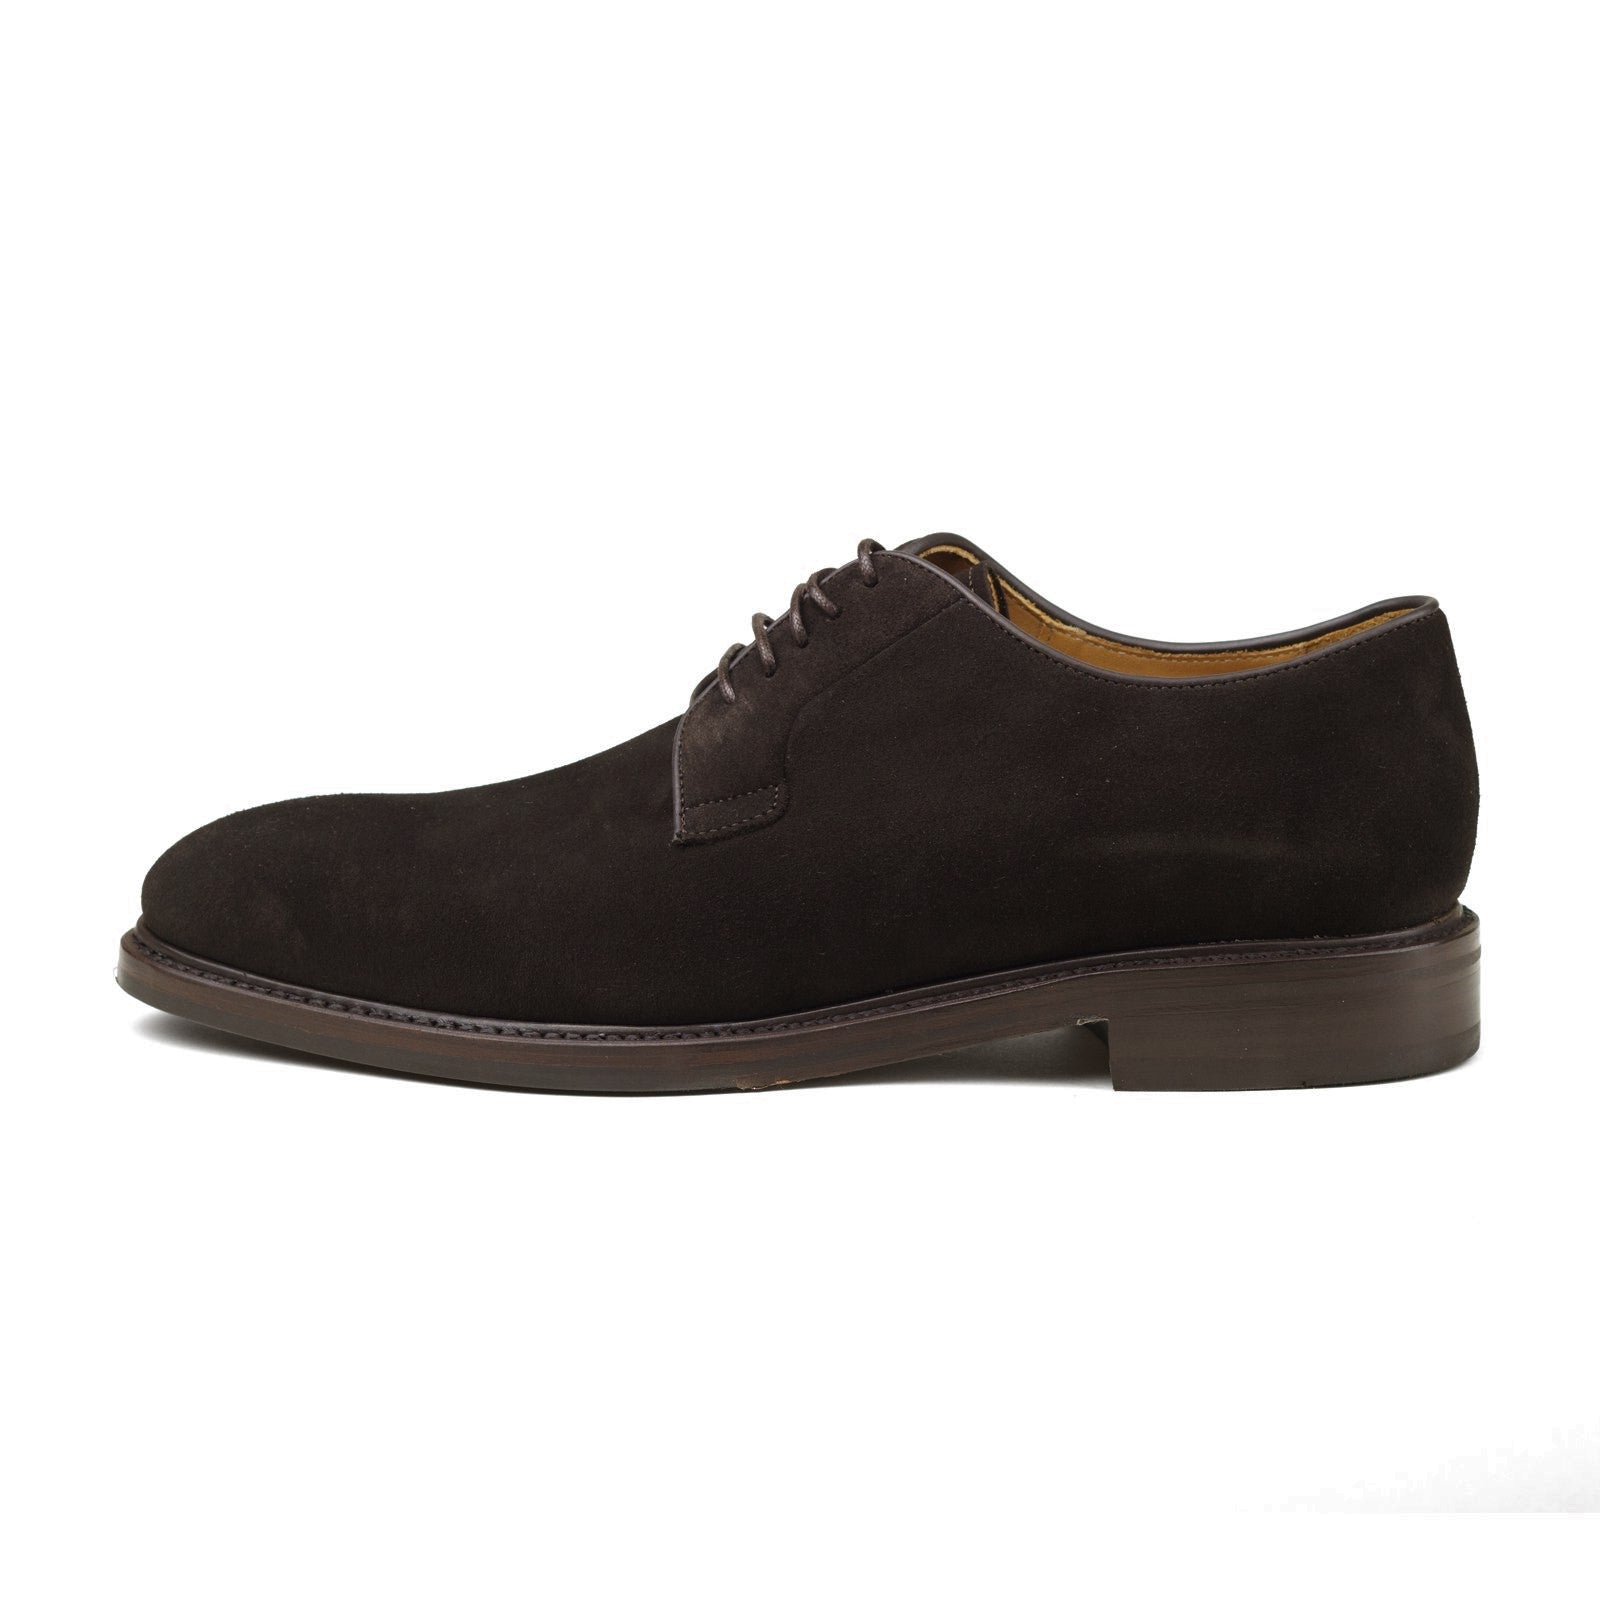 Berwick Men's Suede Derby Lace-Up Shoes 5768/K7